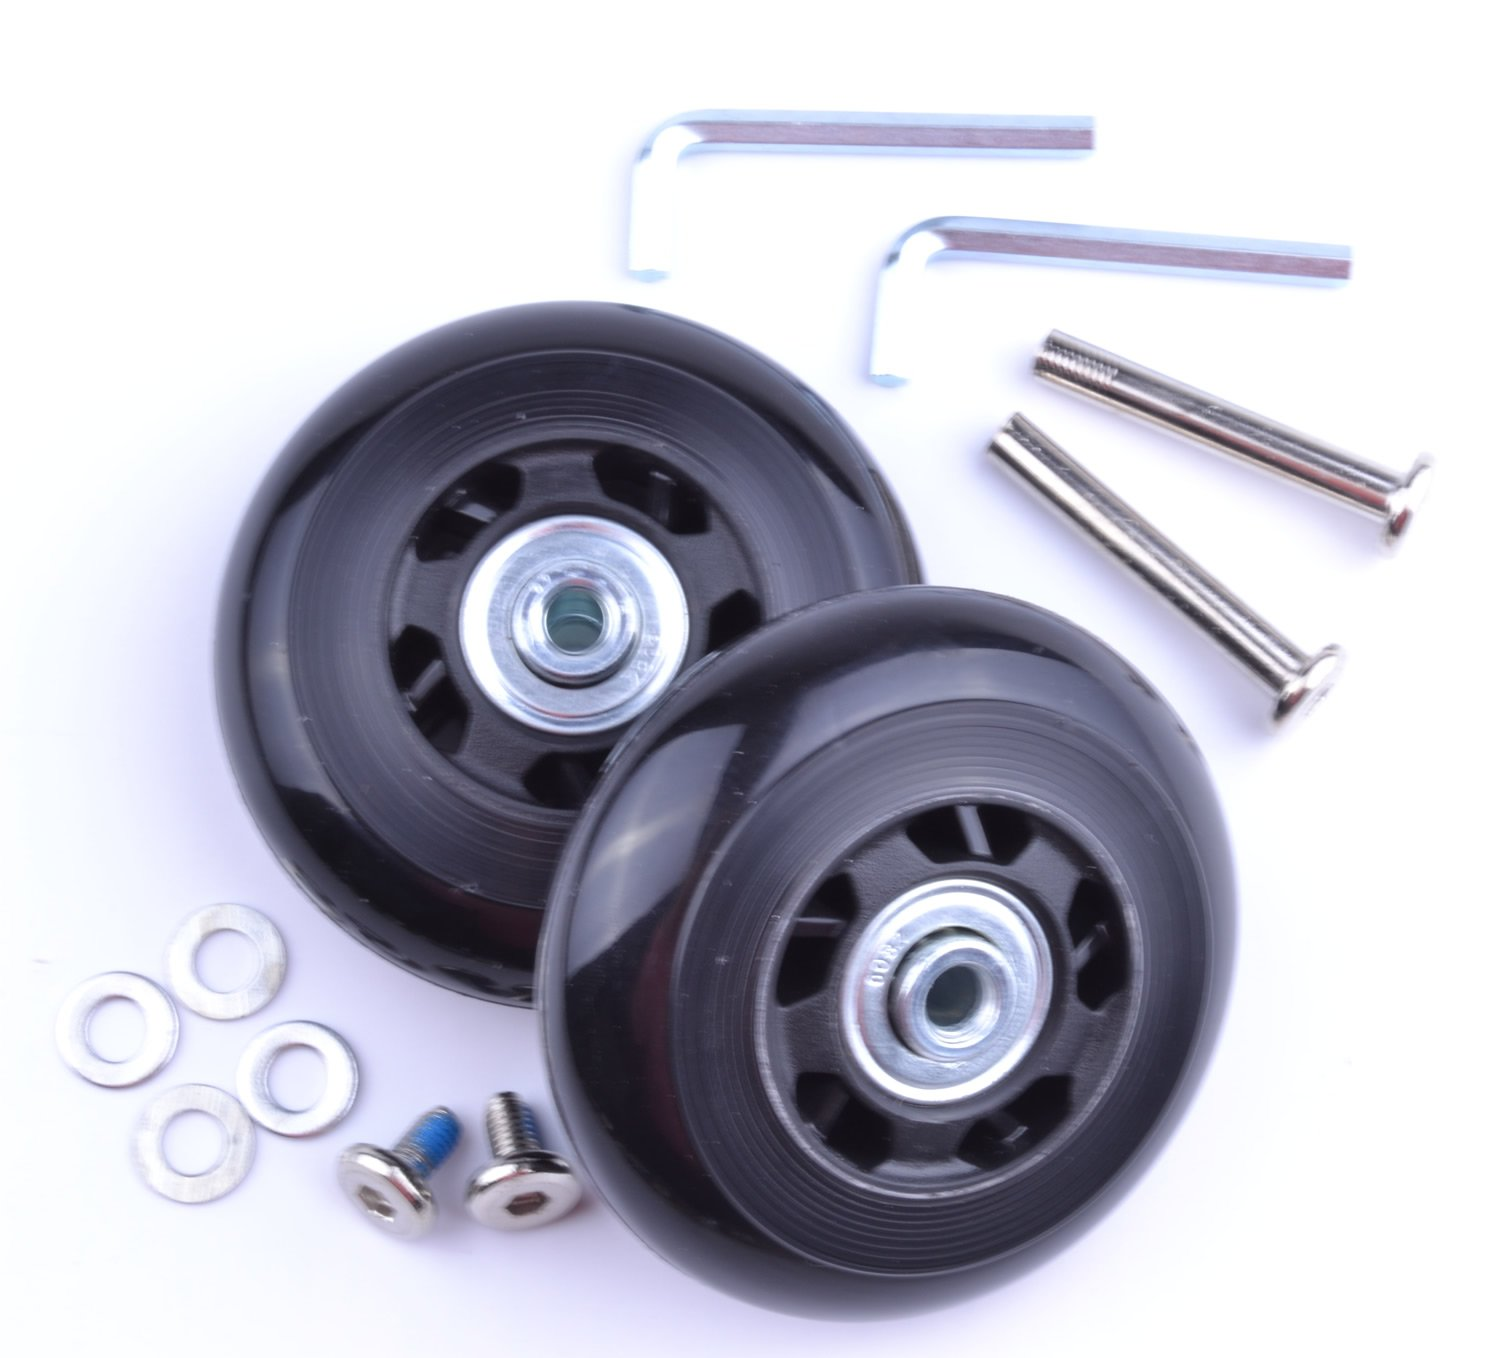 minihut 2 Set of Luggage Suitcase Replacement Wheels With Repair Kit Axles Deluxe